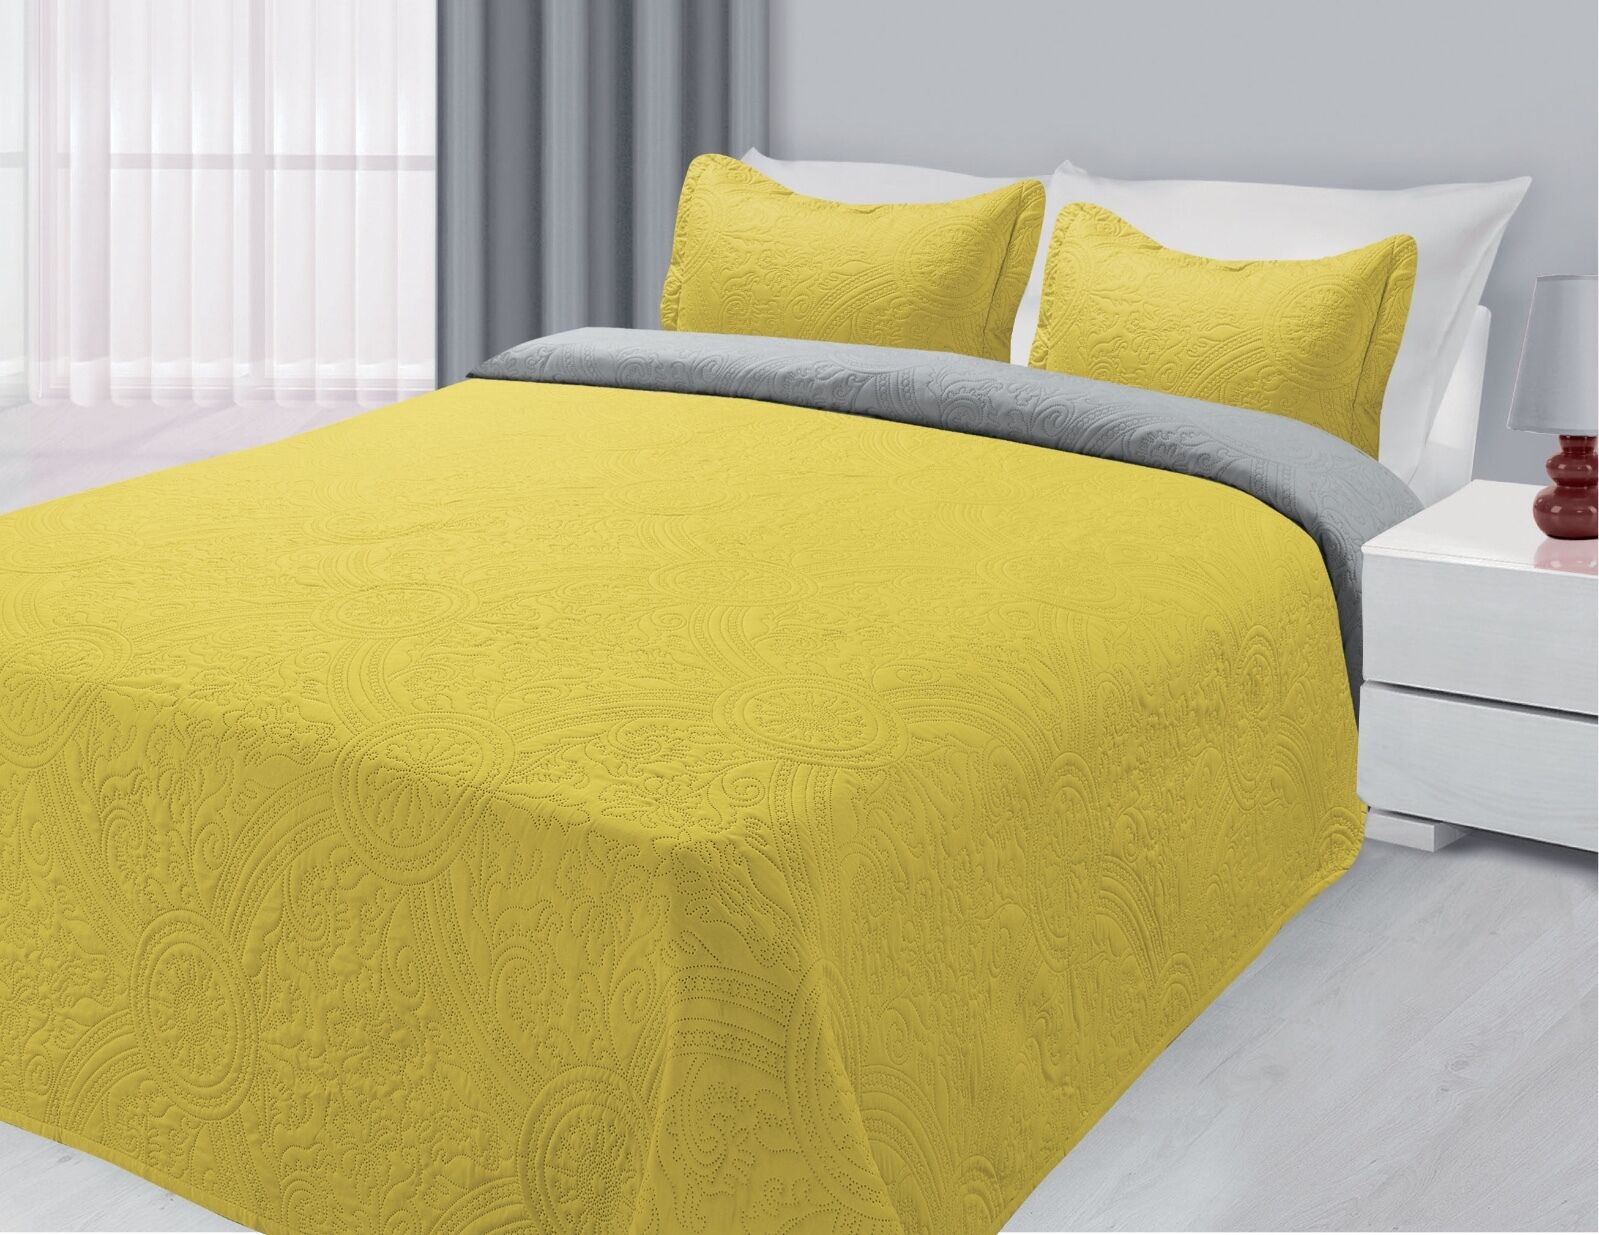 Reversible 3-Piece Solid Quilted Bedspread Coverlet Bedding Set - Yellow & Gray